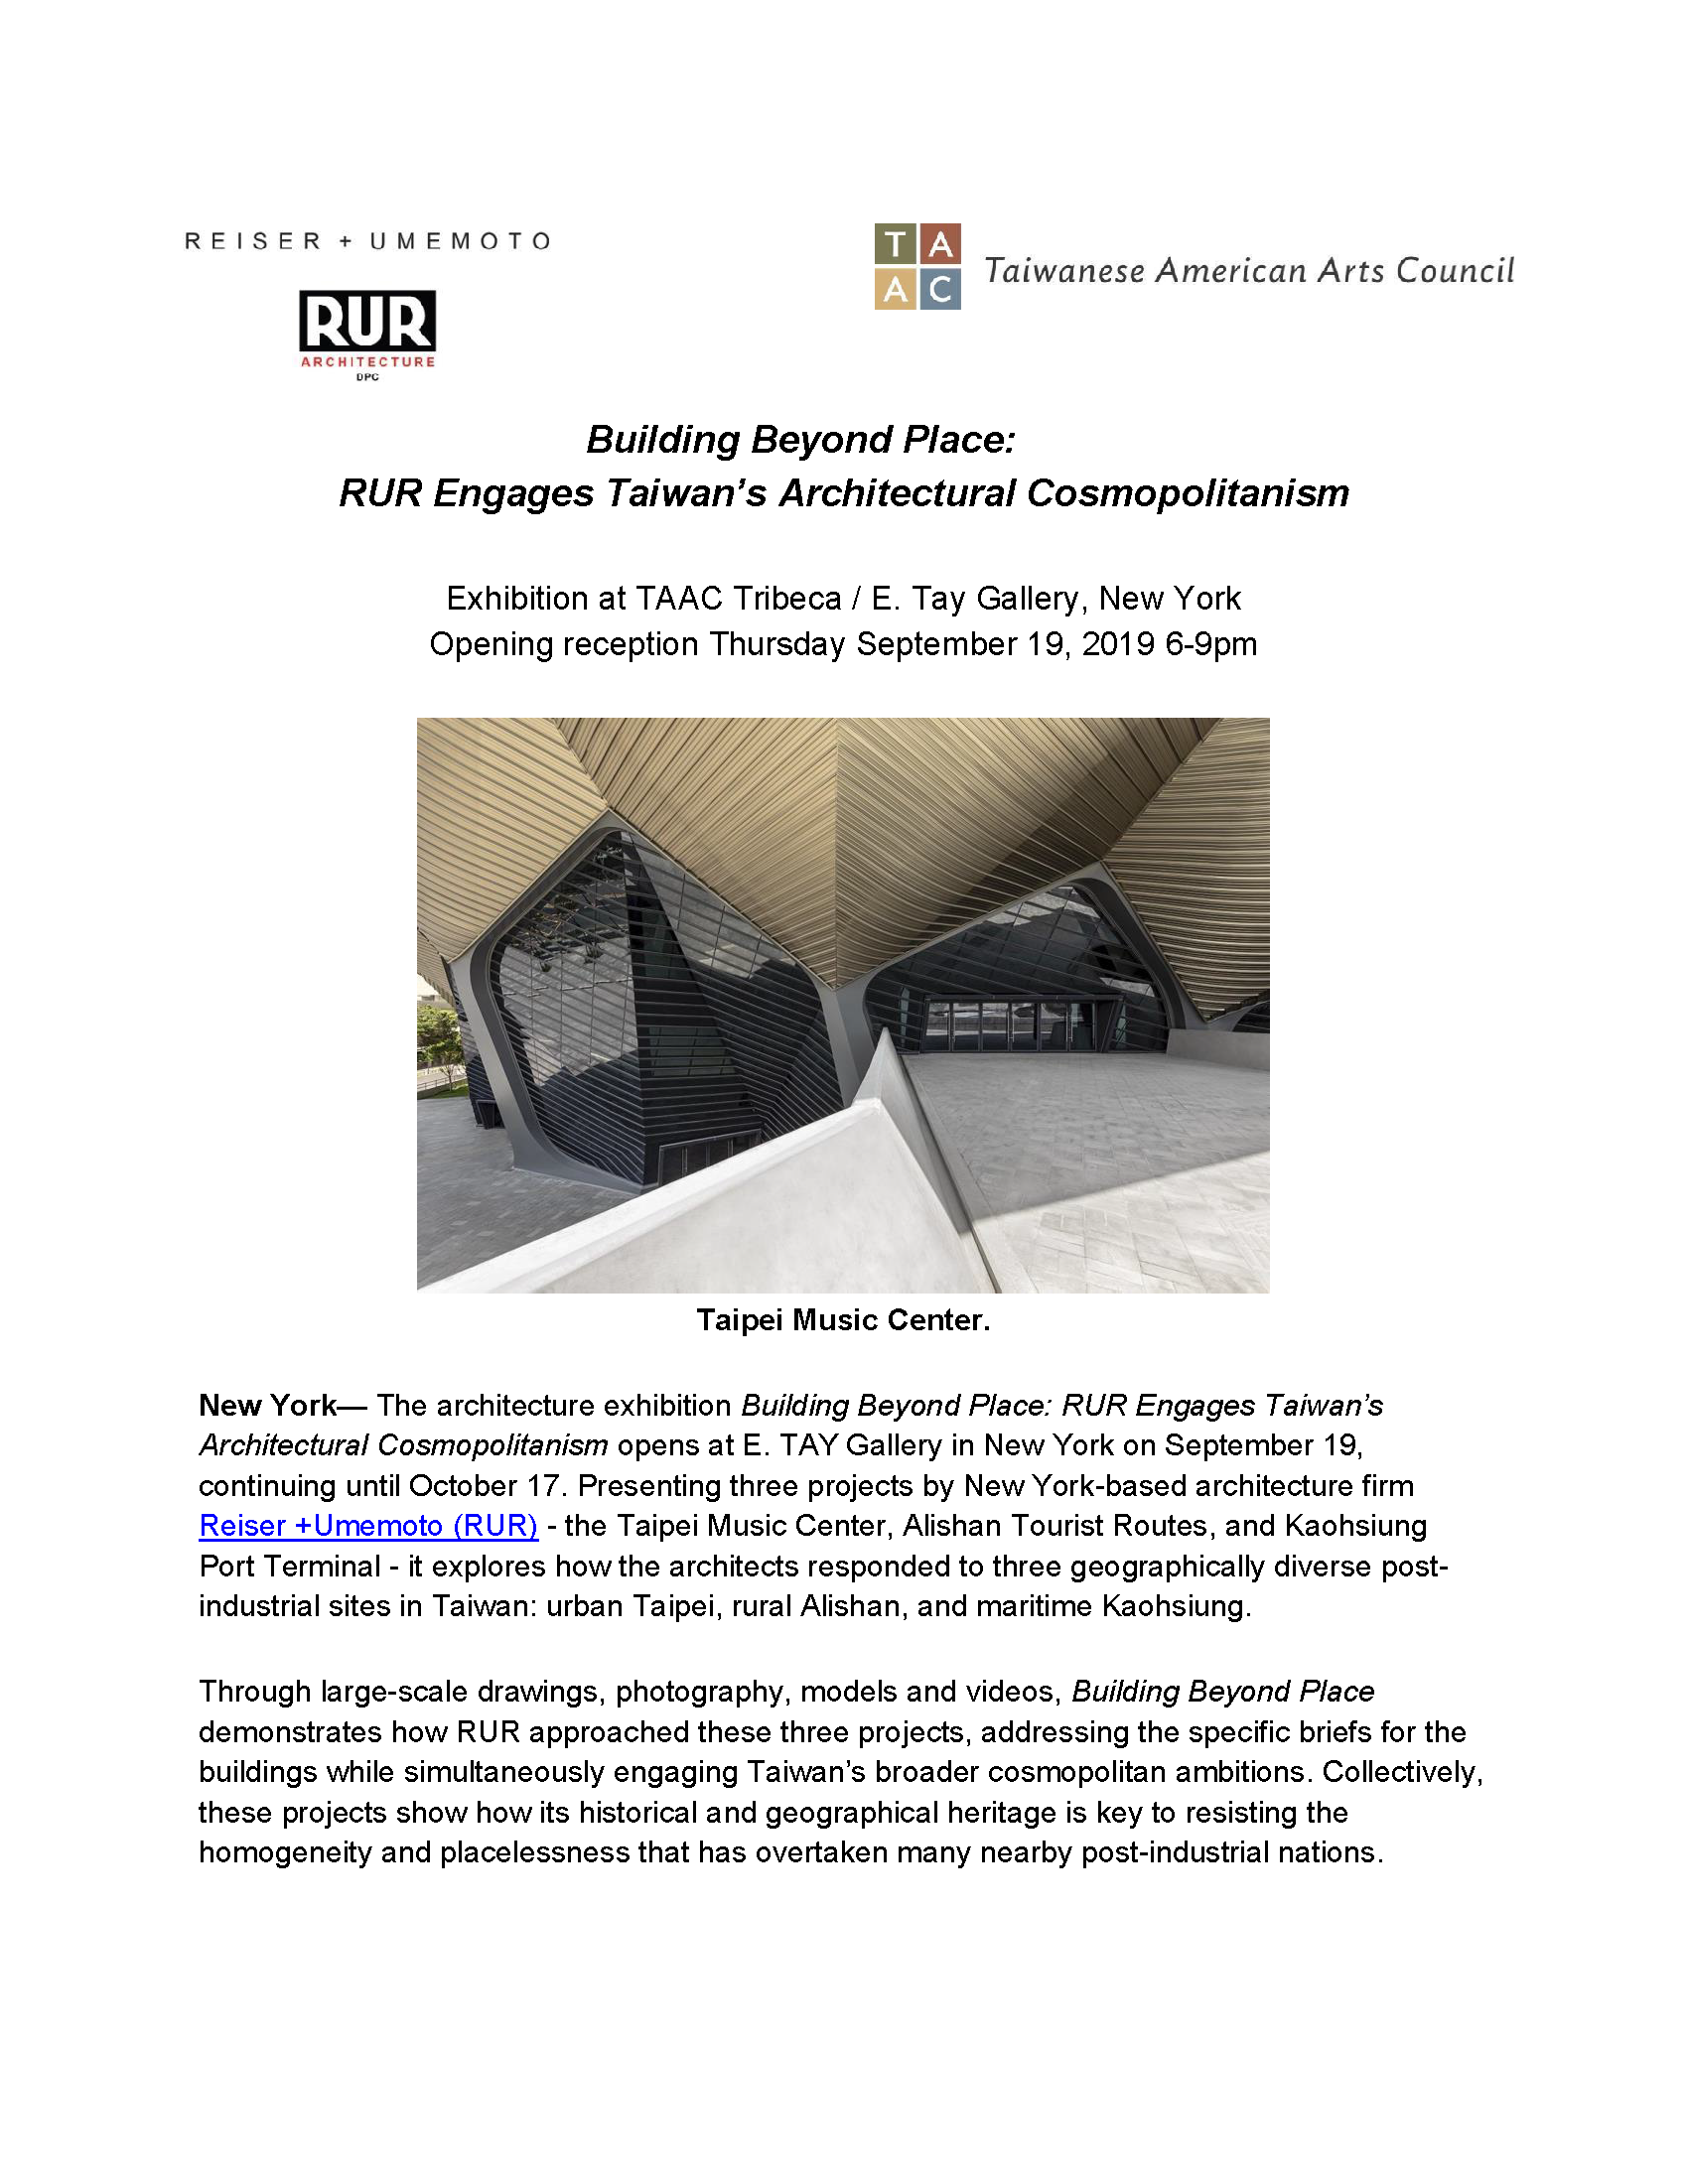 0901 Press Release-AUG 31 Building Beyond Place_ RUR Engages Taiwan's Architectural Cosmopolitanism (1)_Page_1.png